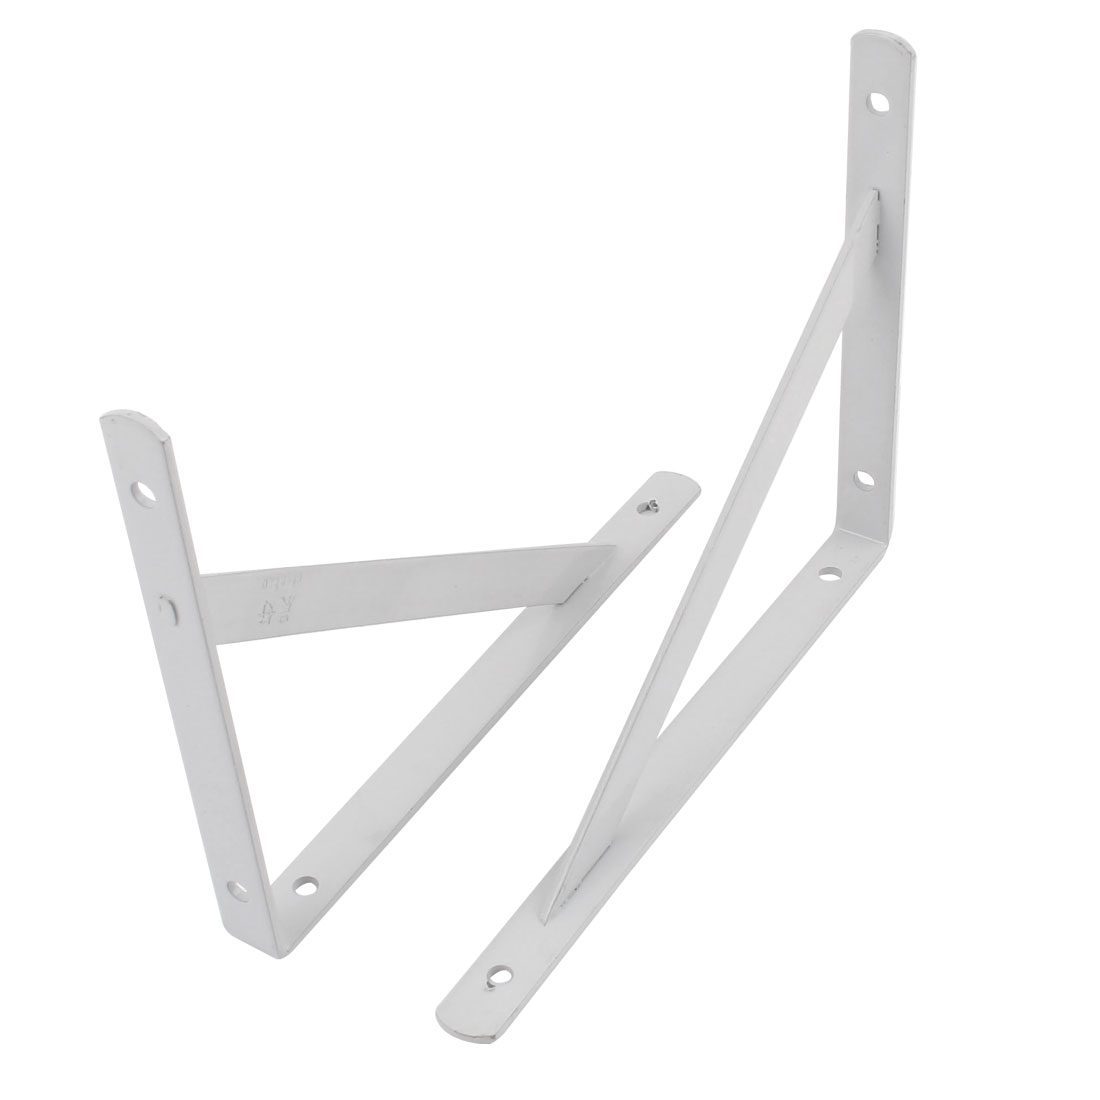 "2 Pcs White Right Angle Shop Store Wall Mounted Shelf Brackets 7"" x 5.5"""